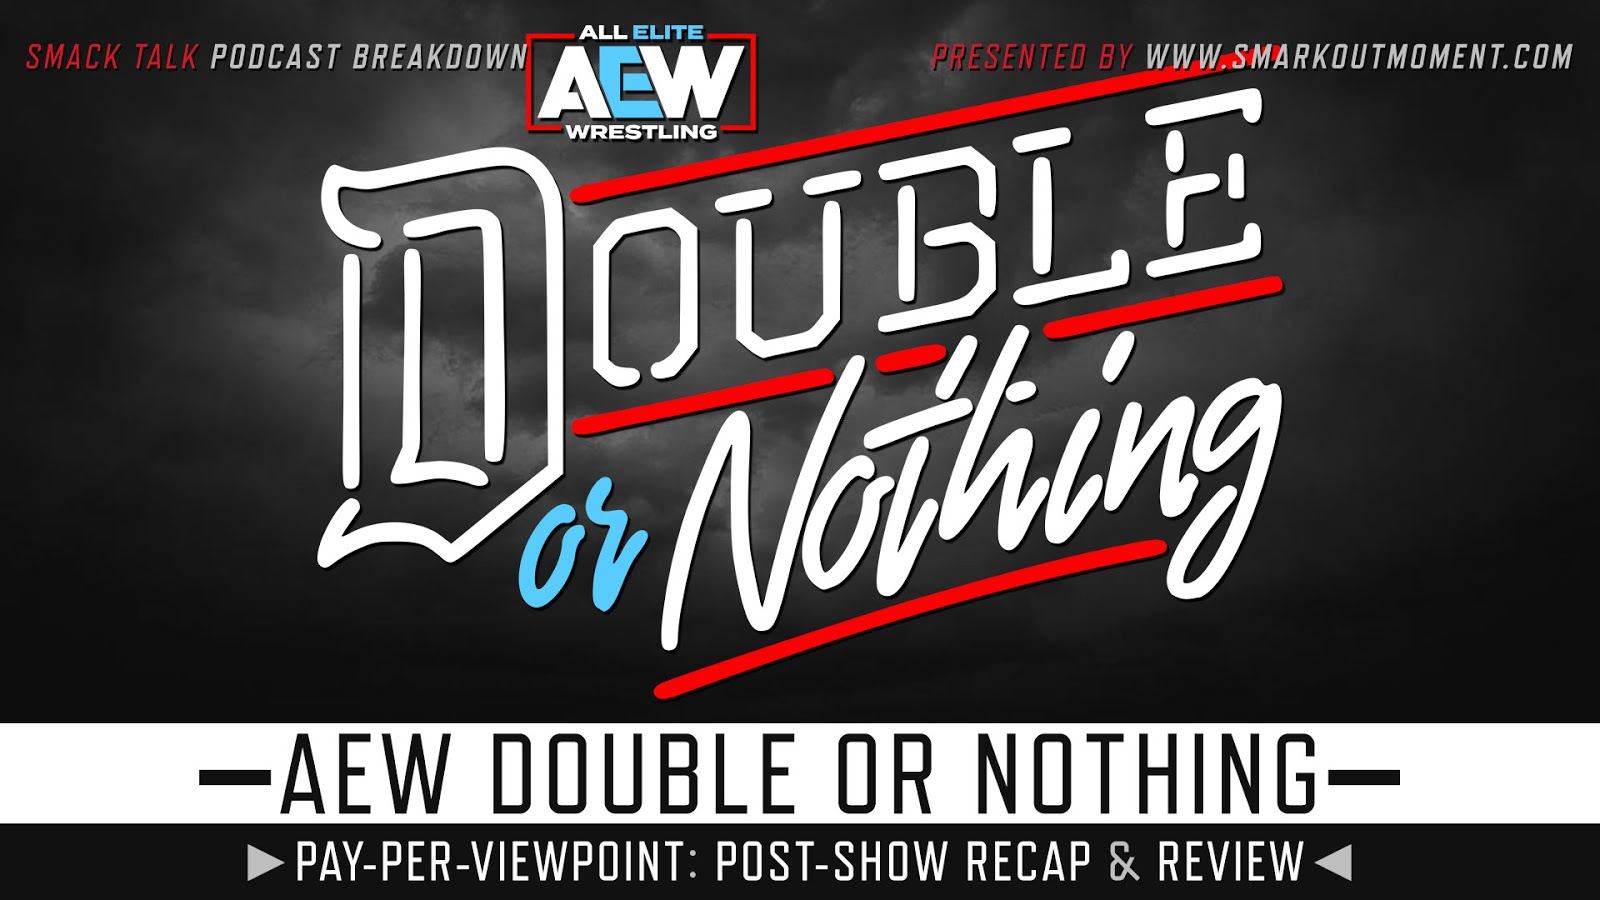 AEW Double or Nothing Recap and Review Podcast